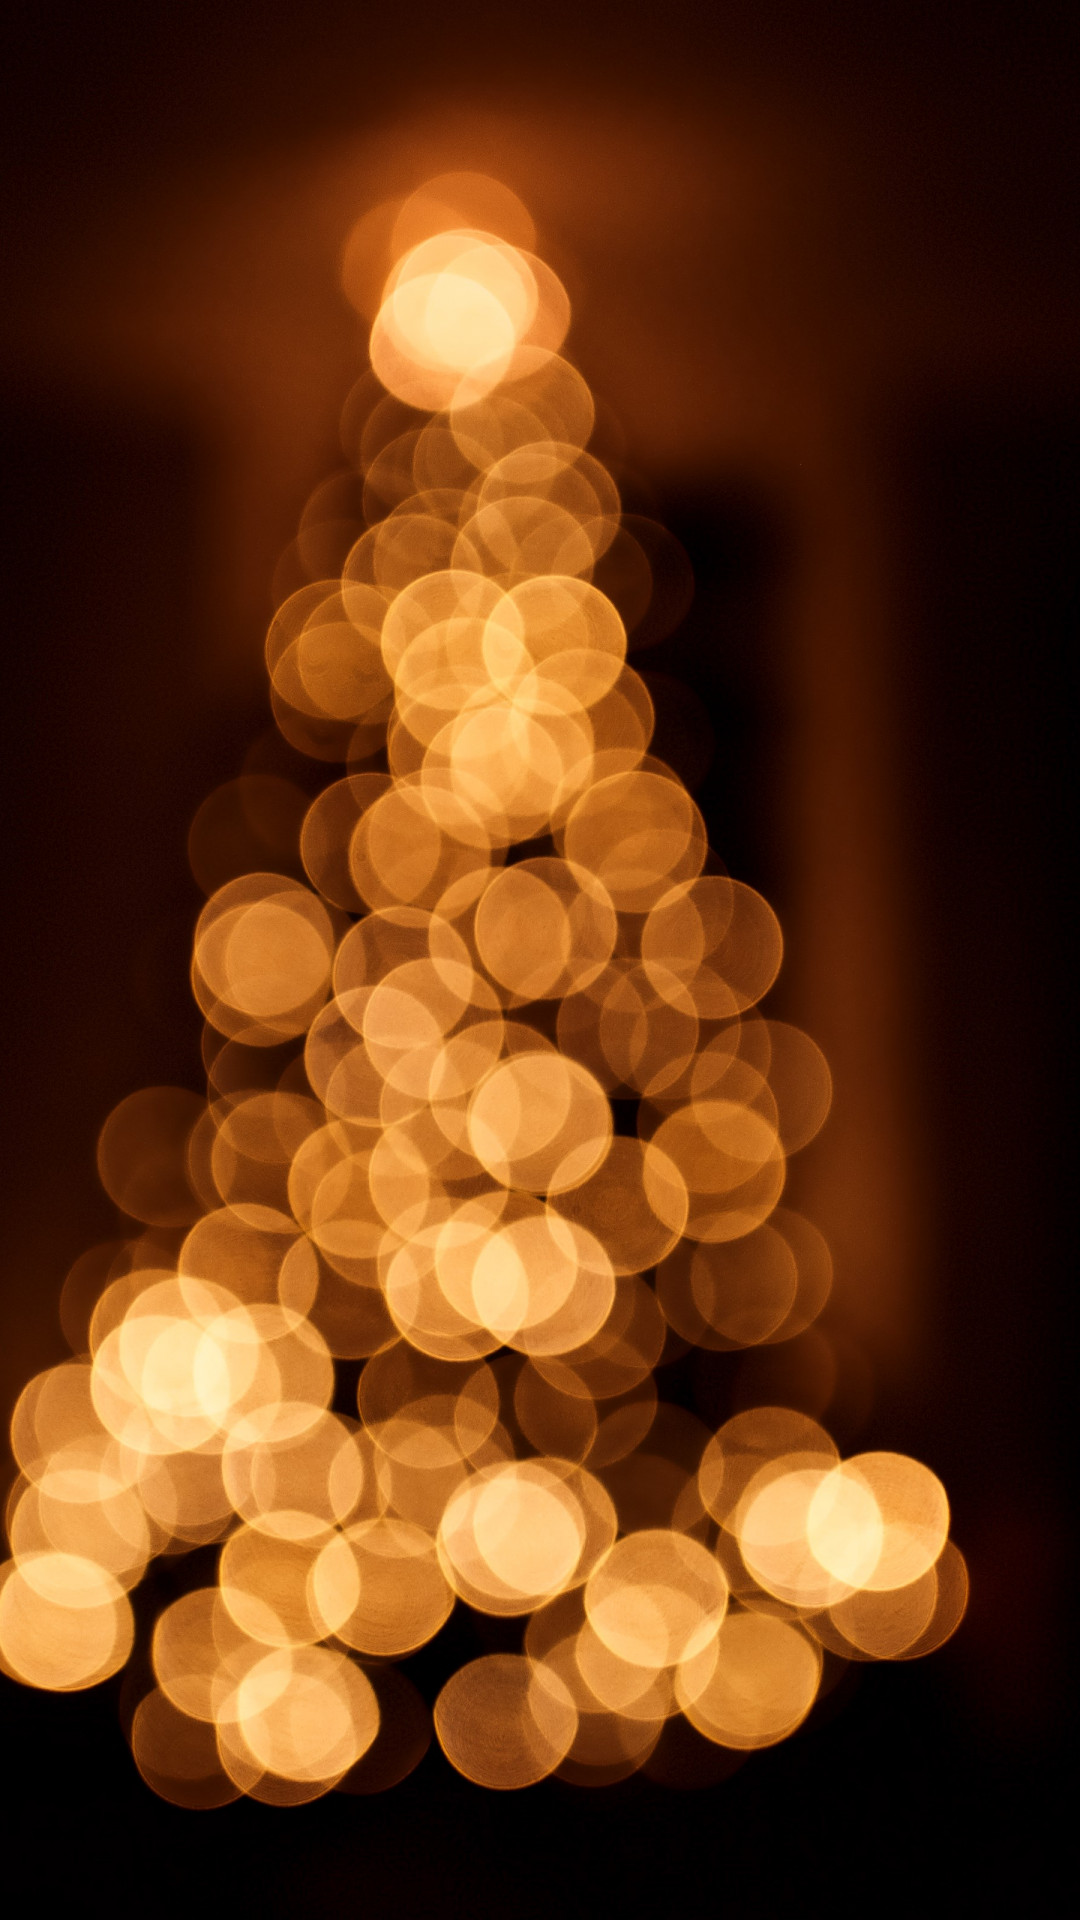 Bokeh Christmas tree wallpaper 1080x1920